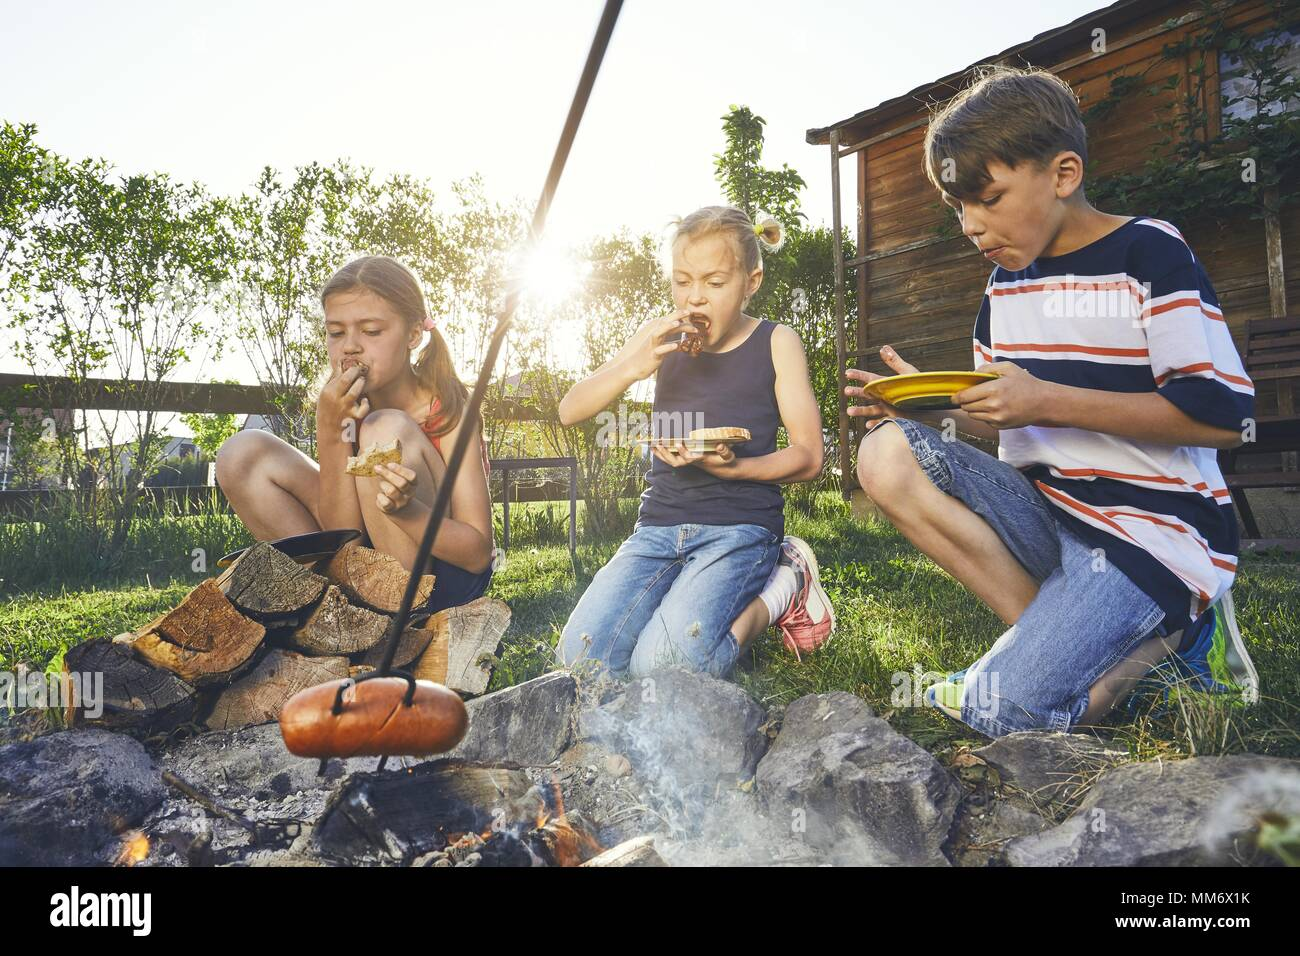 Children enjoy campfire. Siblings (family) toasting sausages on the garden at sunset. - Stock Image